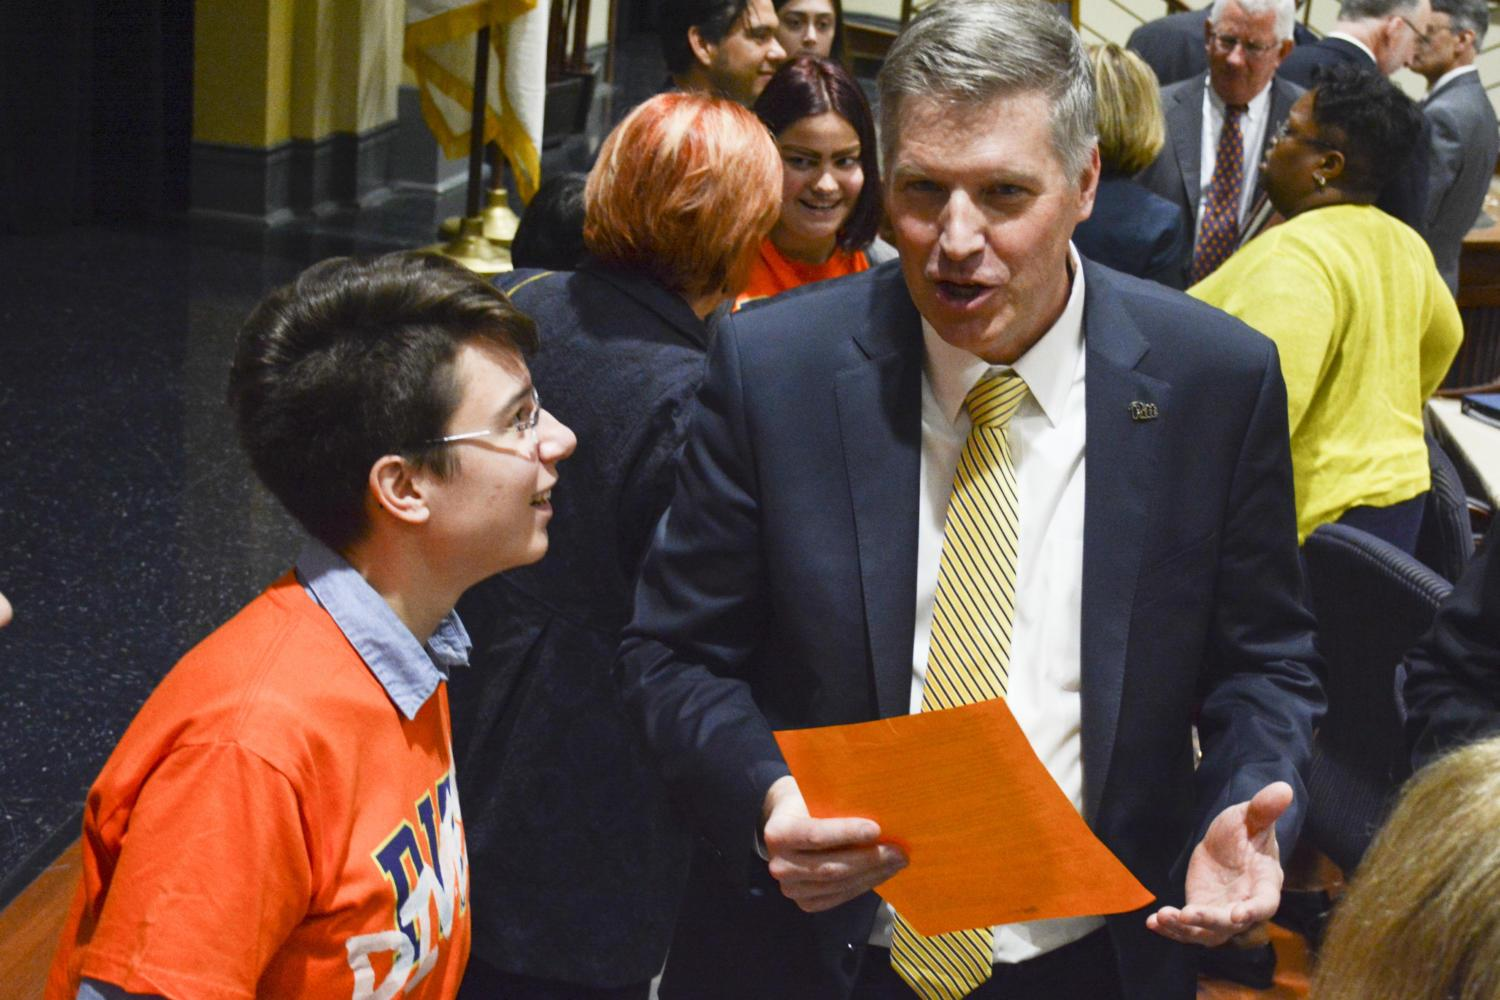 Chancellor Patrick Gallagher talks to members of the Fossil Free Pitt Coalition Feb. 24 at Pitt's Board of Trustees meeting at the William Pitt Union. (TPN File Photo)